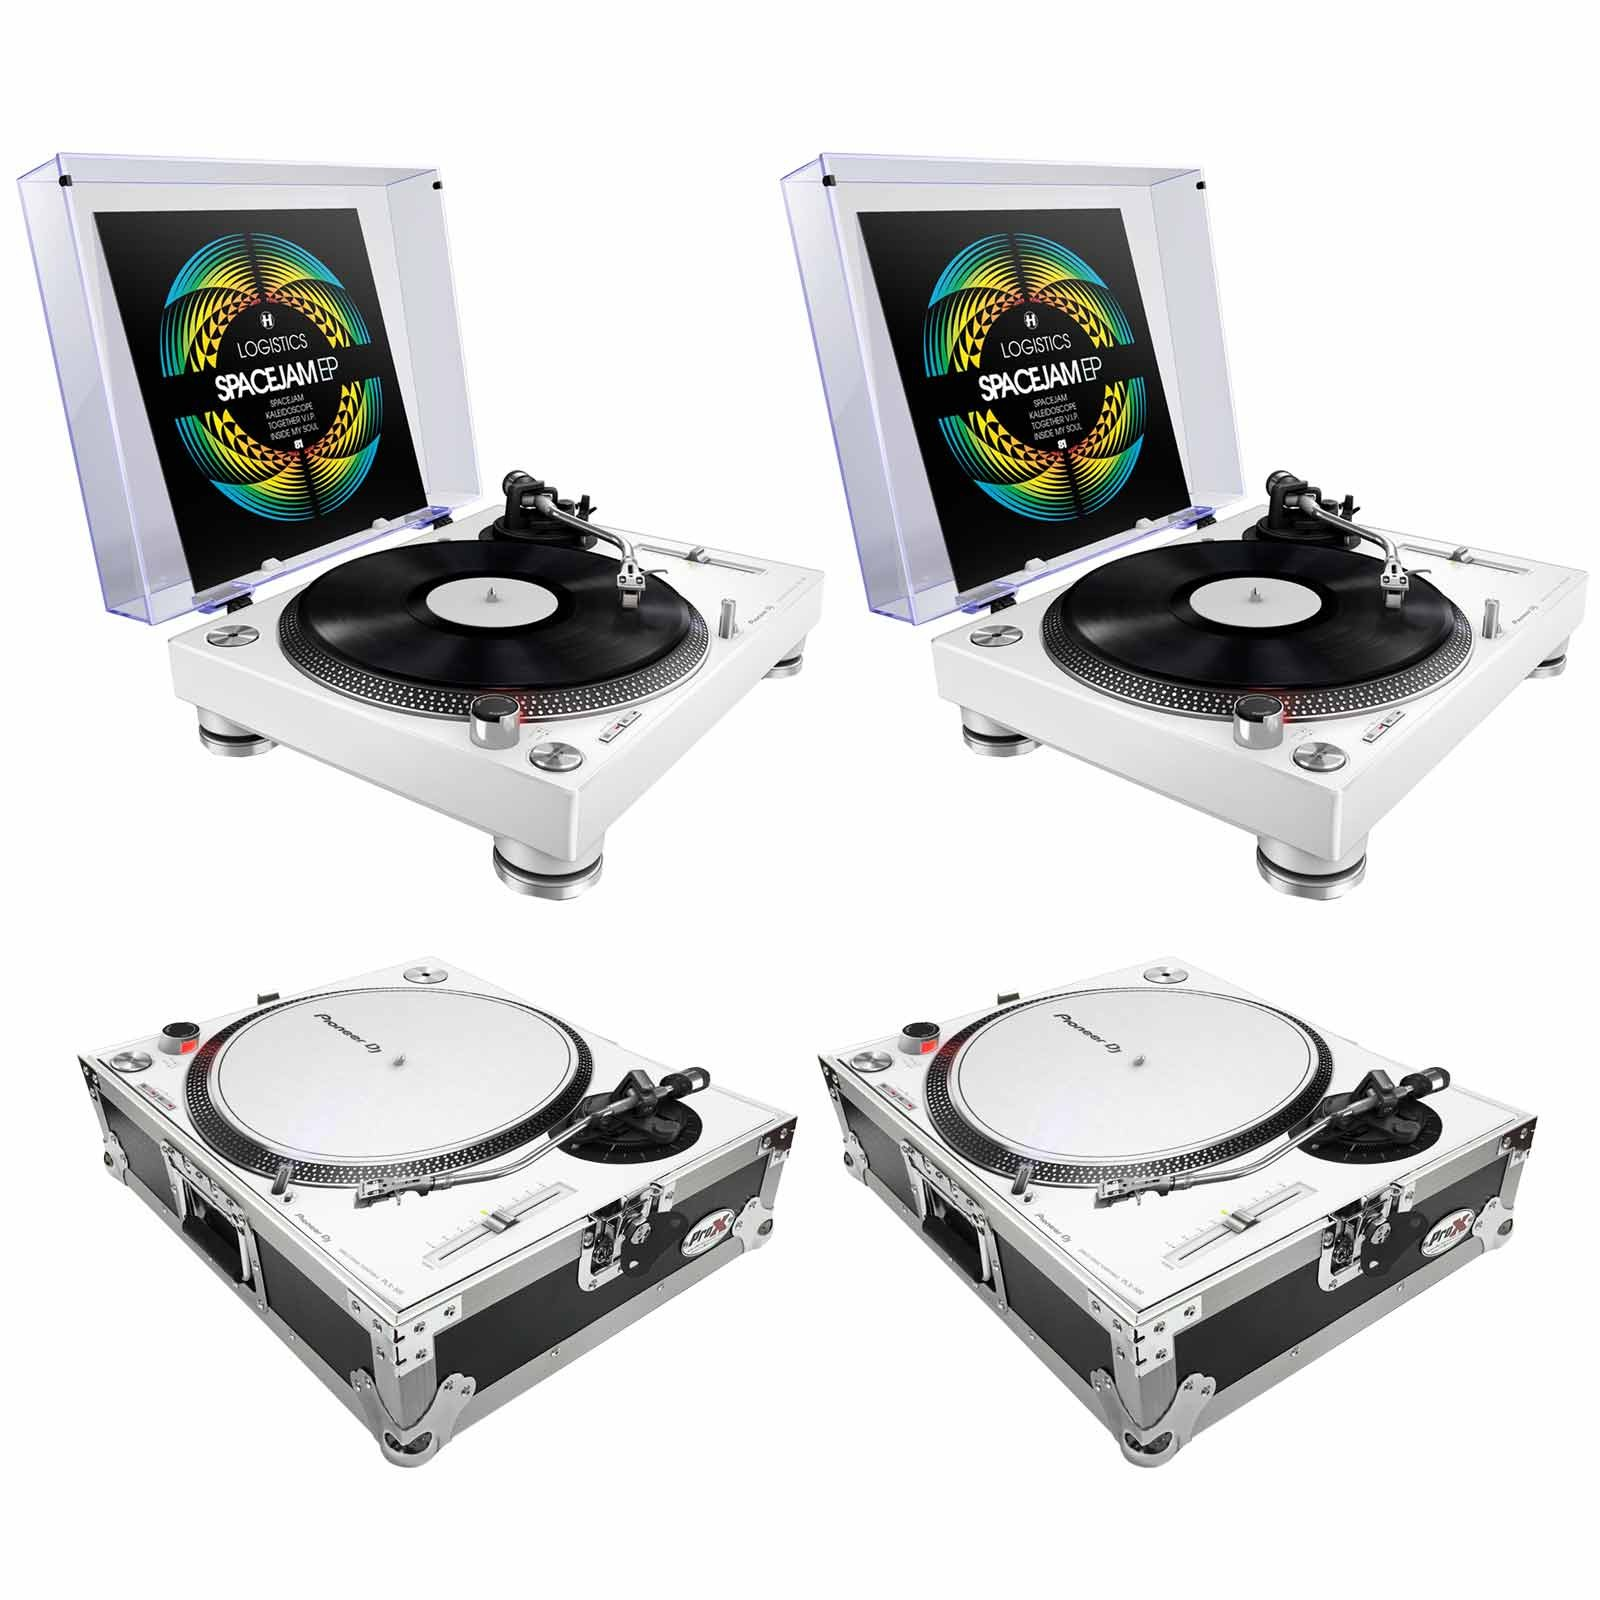 pioneer dj plx 500 turntables white with prox turntable cases duo package. Black Bedroom Furniture Sets. Home Design Ideas